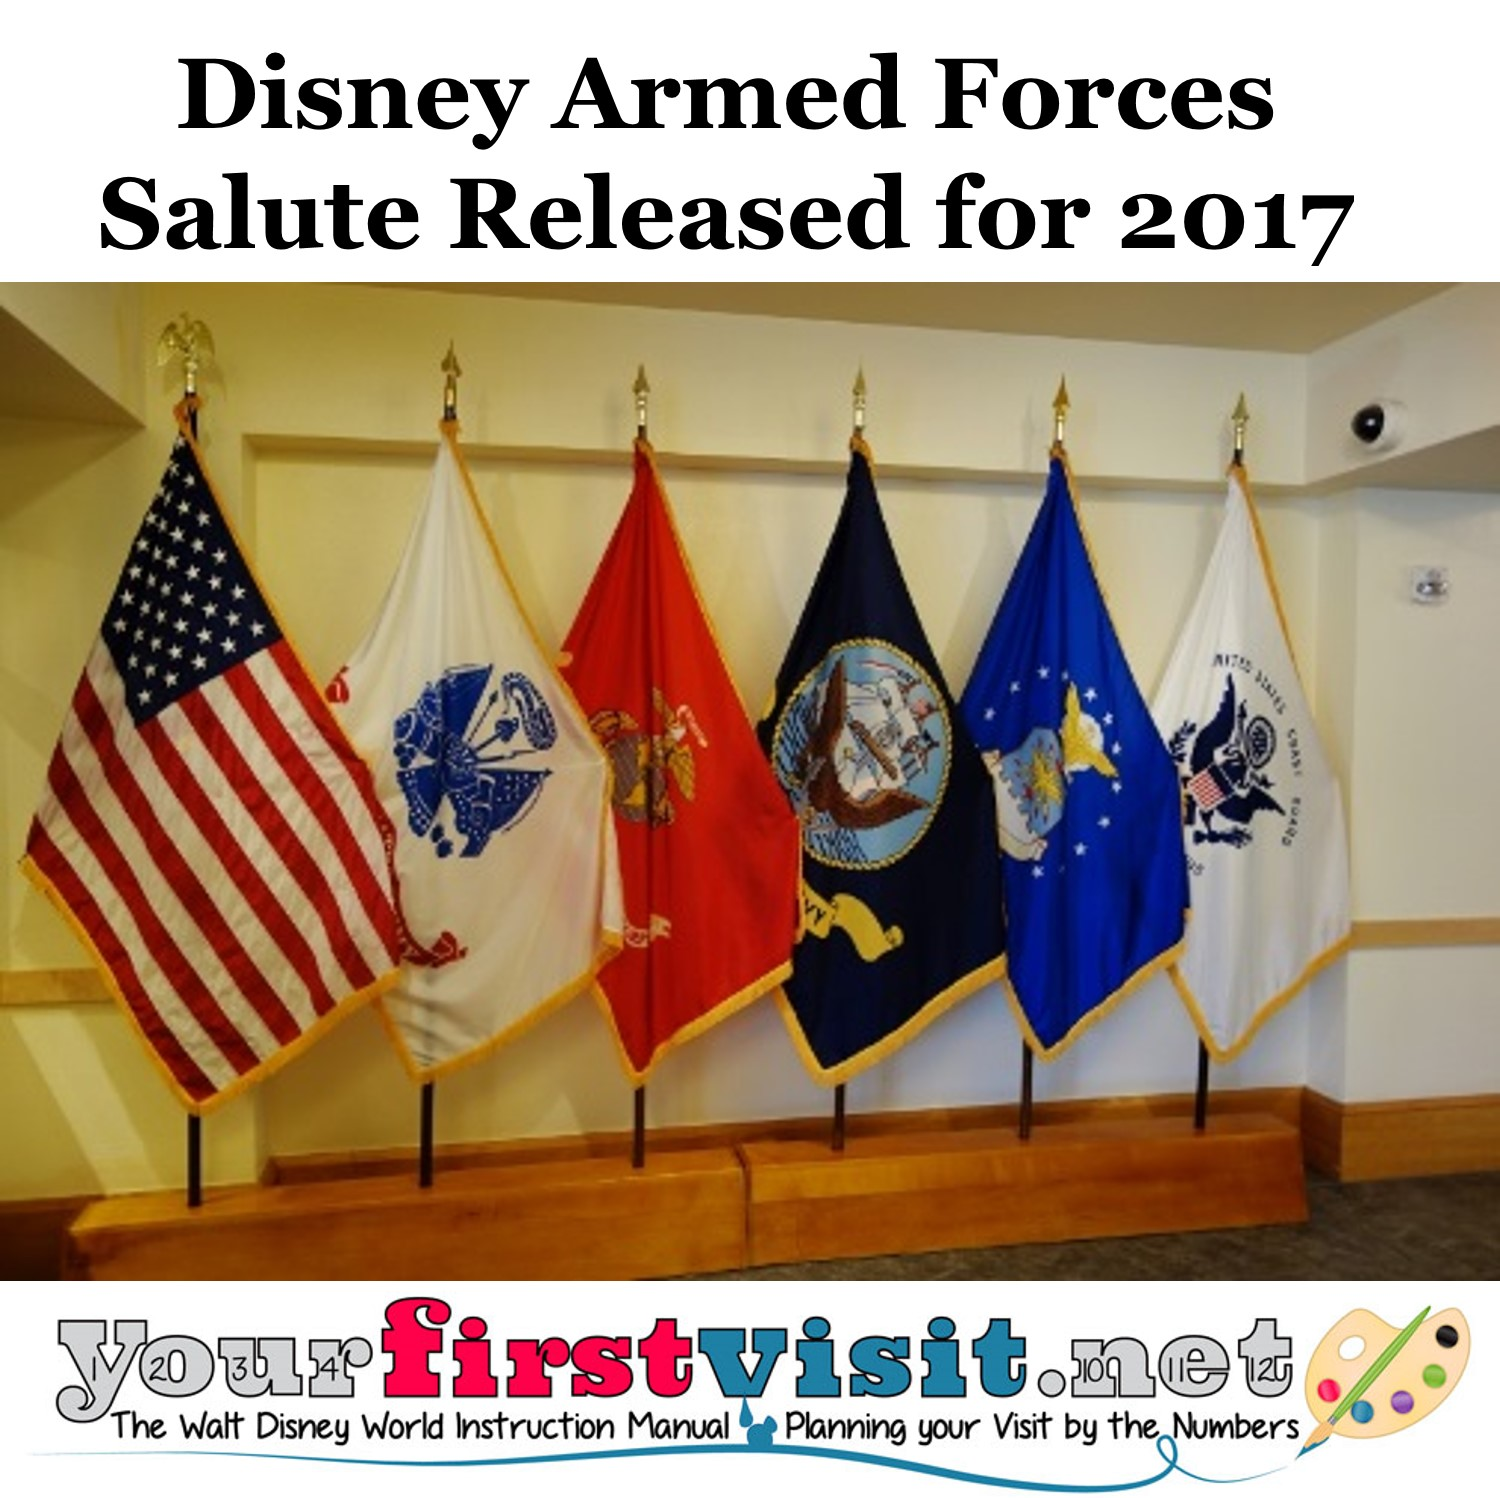 disney-armed-forces-salute-for-2017-released-from-yourfirstvisit-net